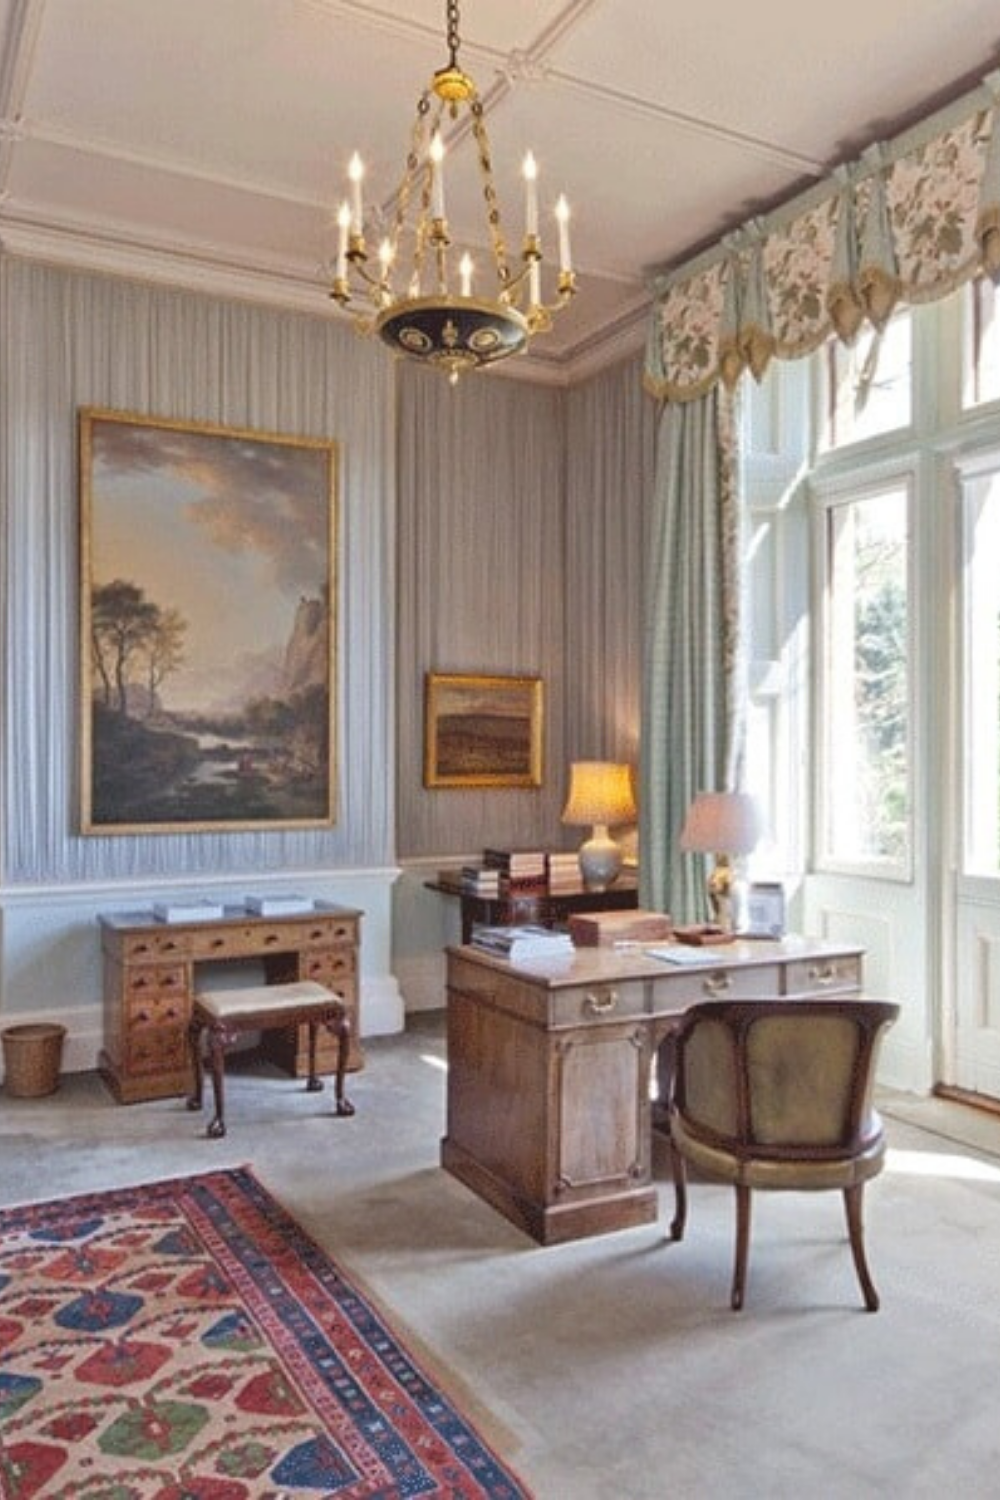 Office Room Design Software: David Beckham's Home In Cotswolds, UK (Purchased For $41.7